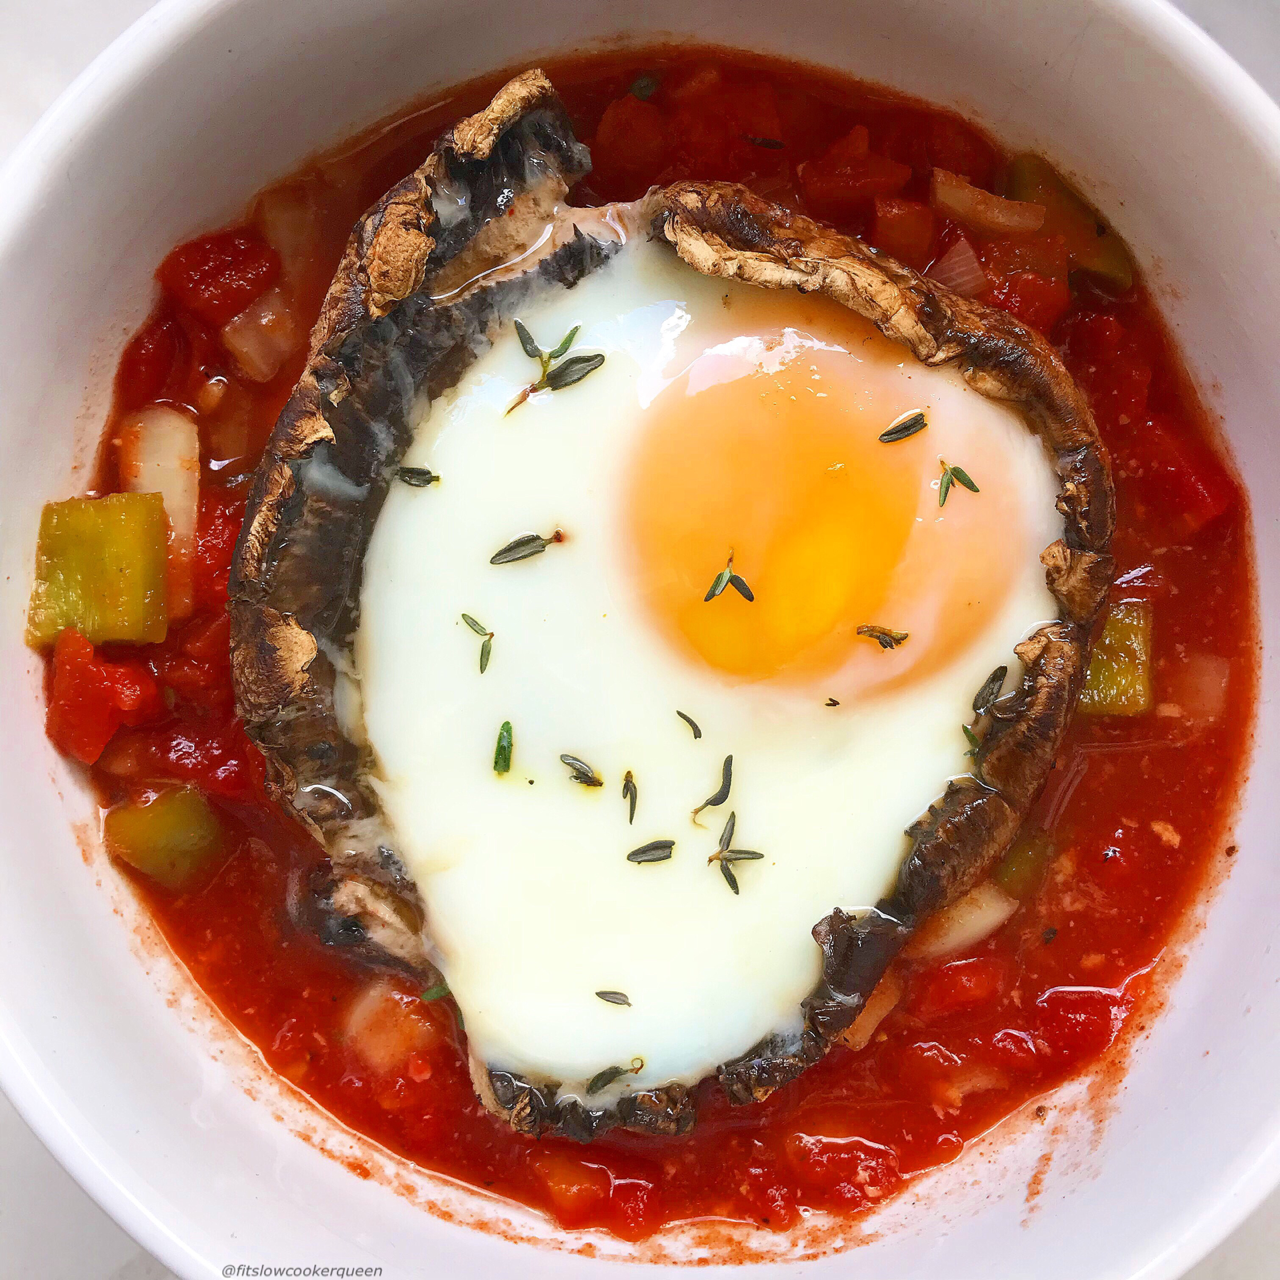 Crack some eggs into portobello mushrooms and let your slow cooker cook them to your liking. This easy and healthy low-carb, paleo and whole30 recipe can be served any time of the day.